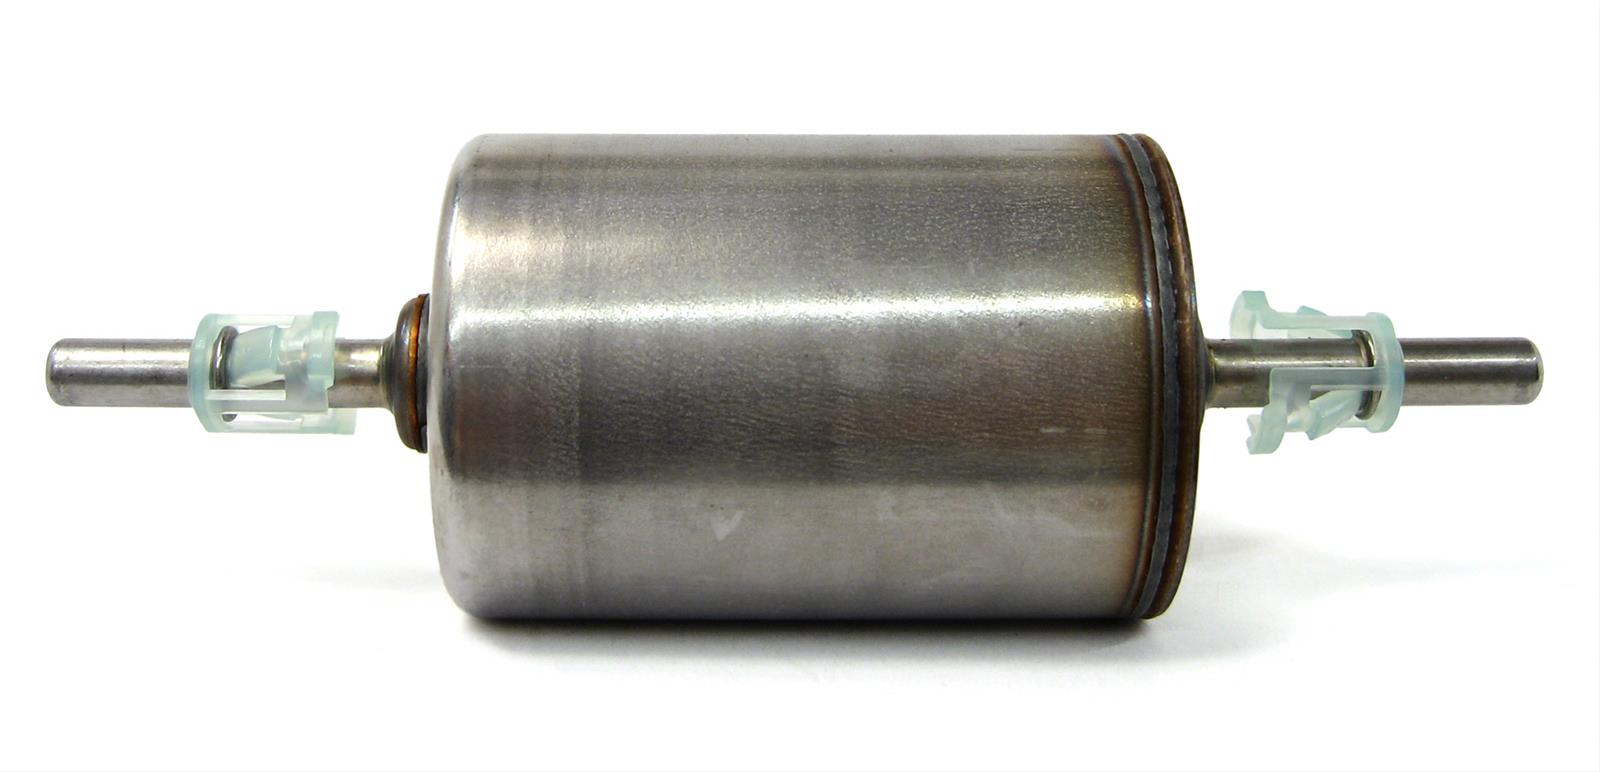 acdelco fuel filters 25121129 - free shipping on orders over $99 at summit  racing